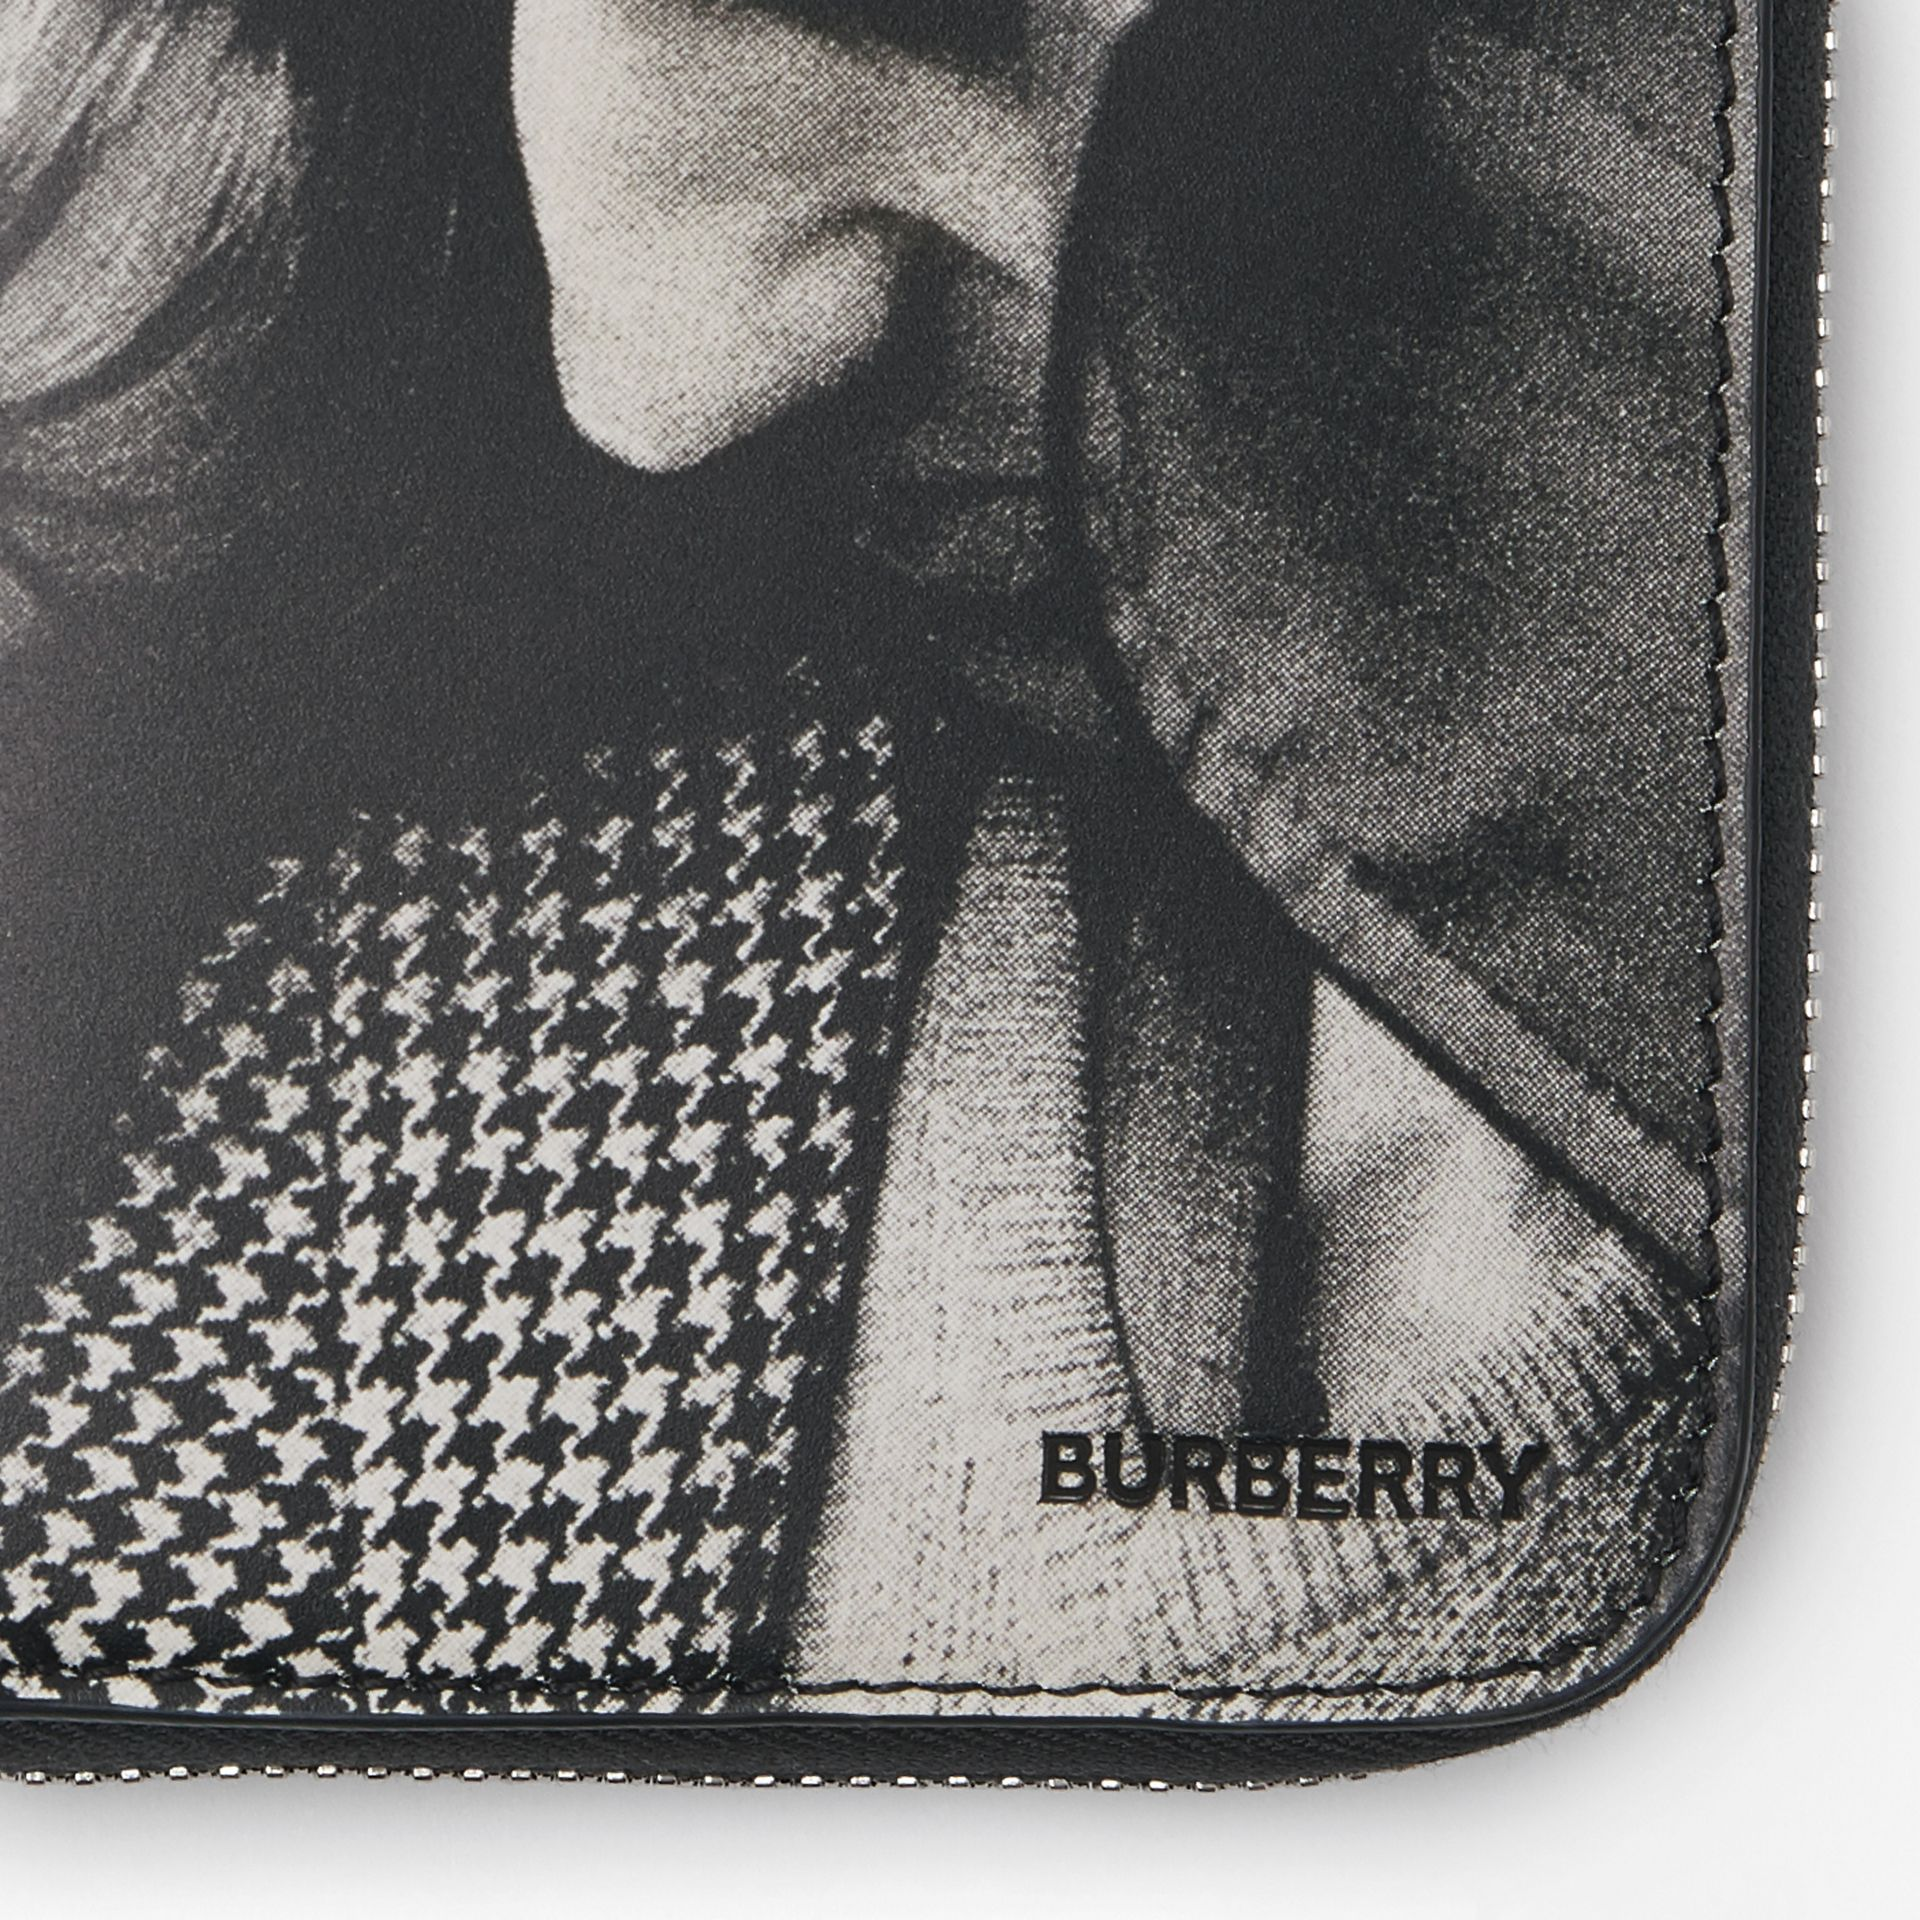 Archive Campaign Print Leather Ziparound Wallet in Black/white - Men | Burberry - gallery image 1